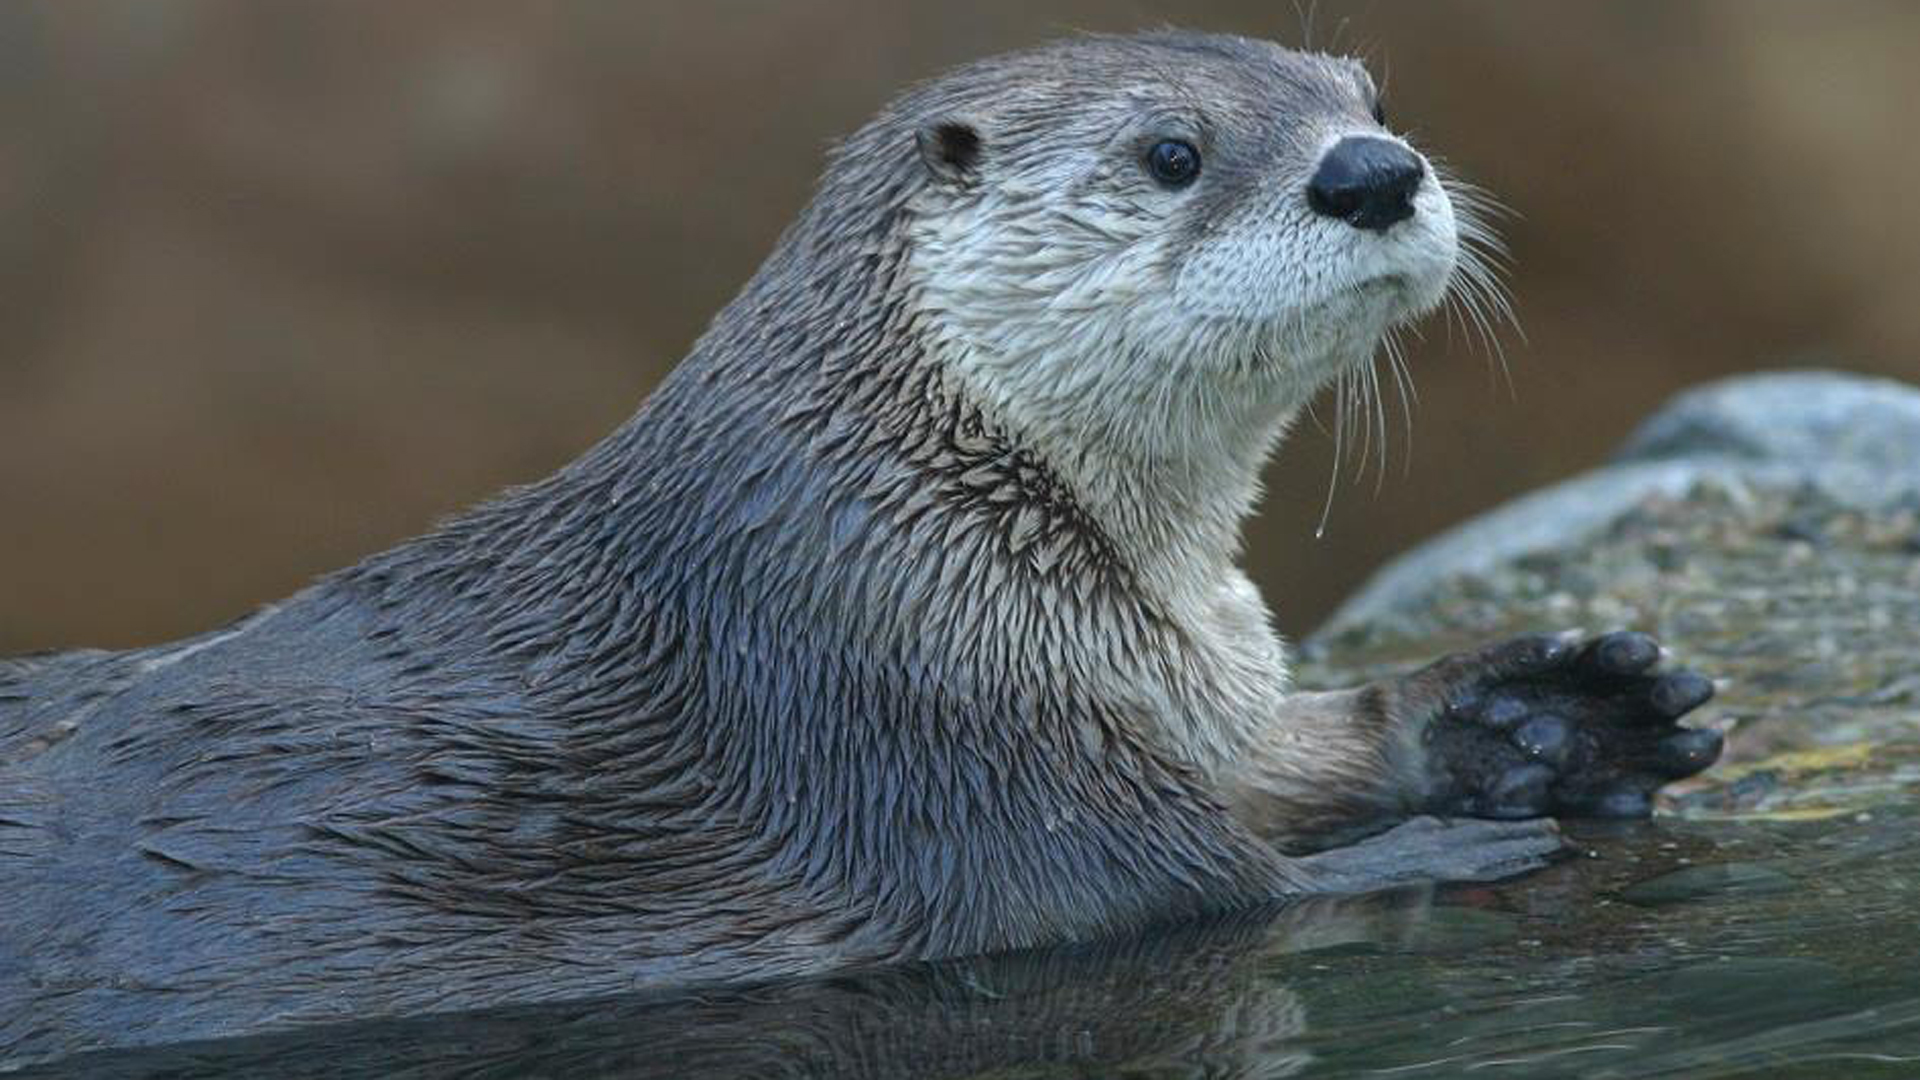 An unidentified North American river otter is seen in a file photo from the Calgary Zoo's Facebook page.